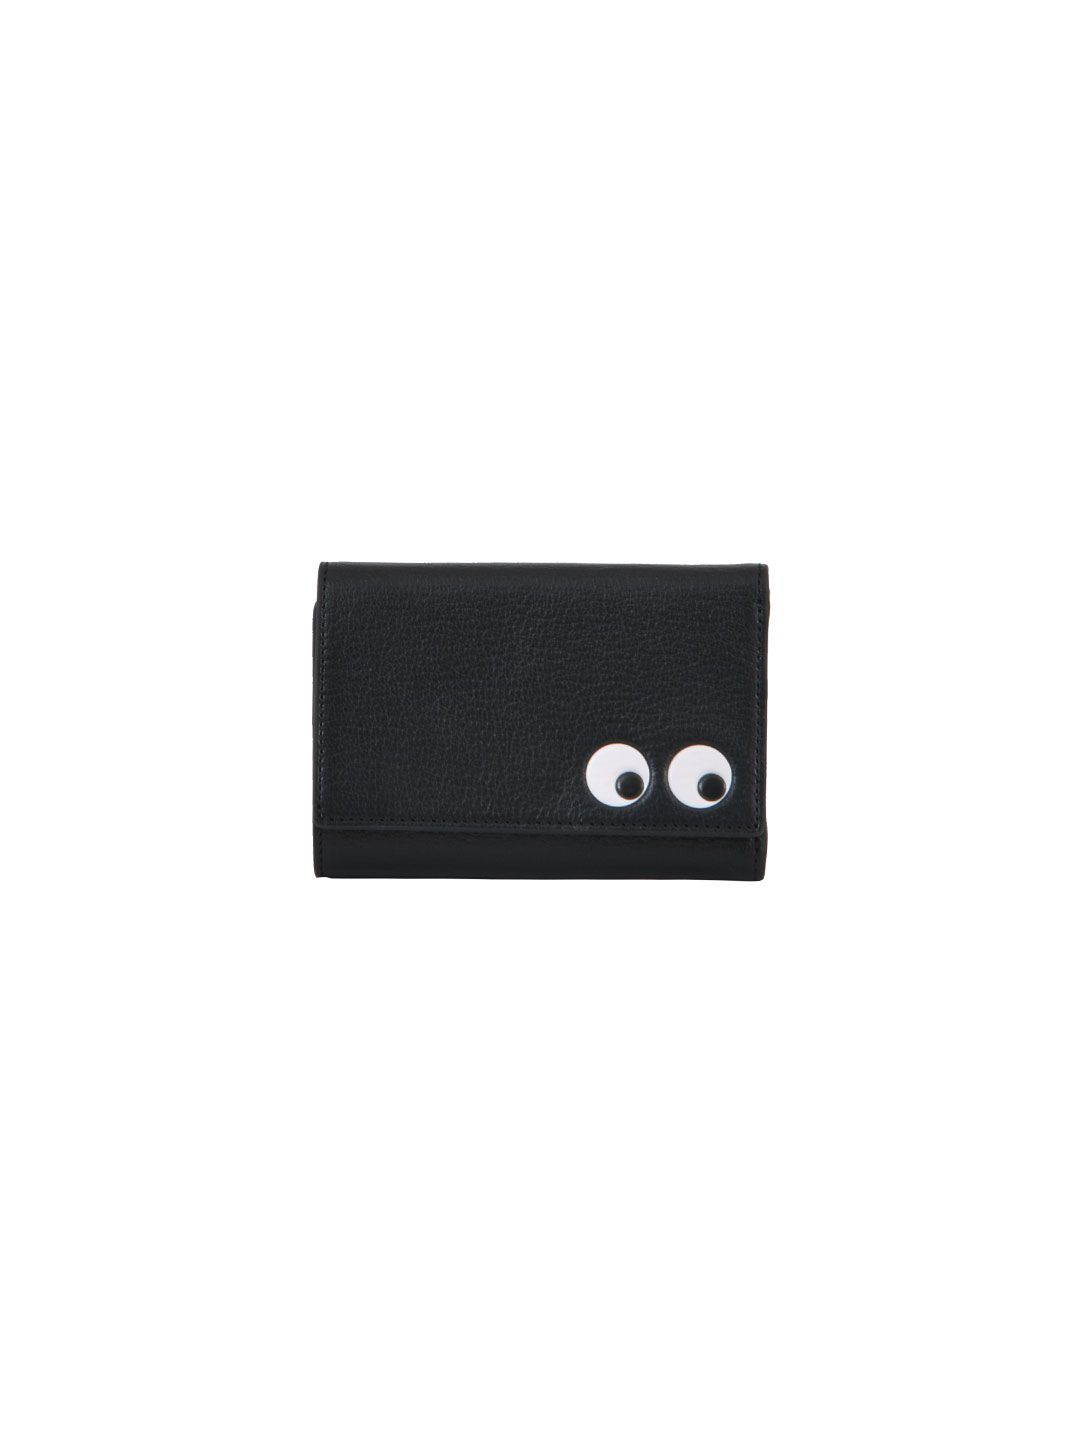 Anya Hindmarch Small Trifold Wallet With Eyes